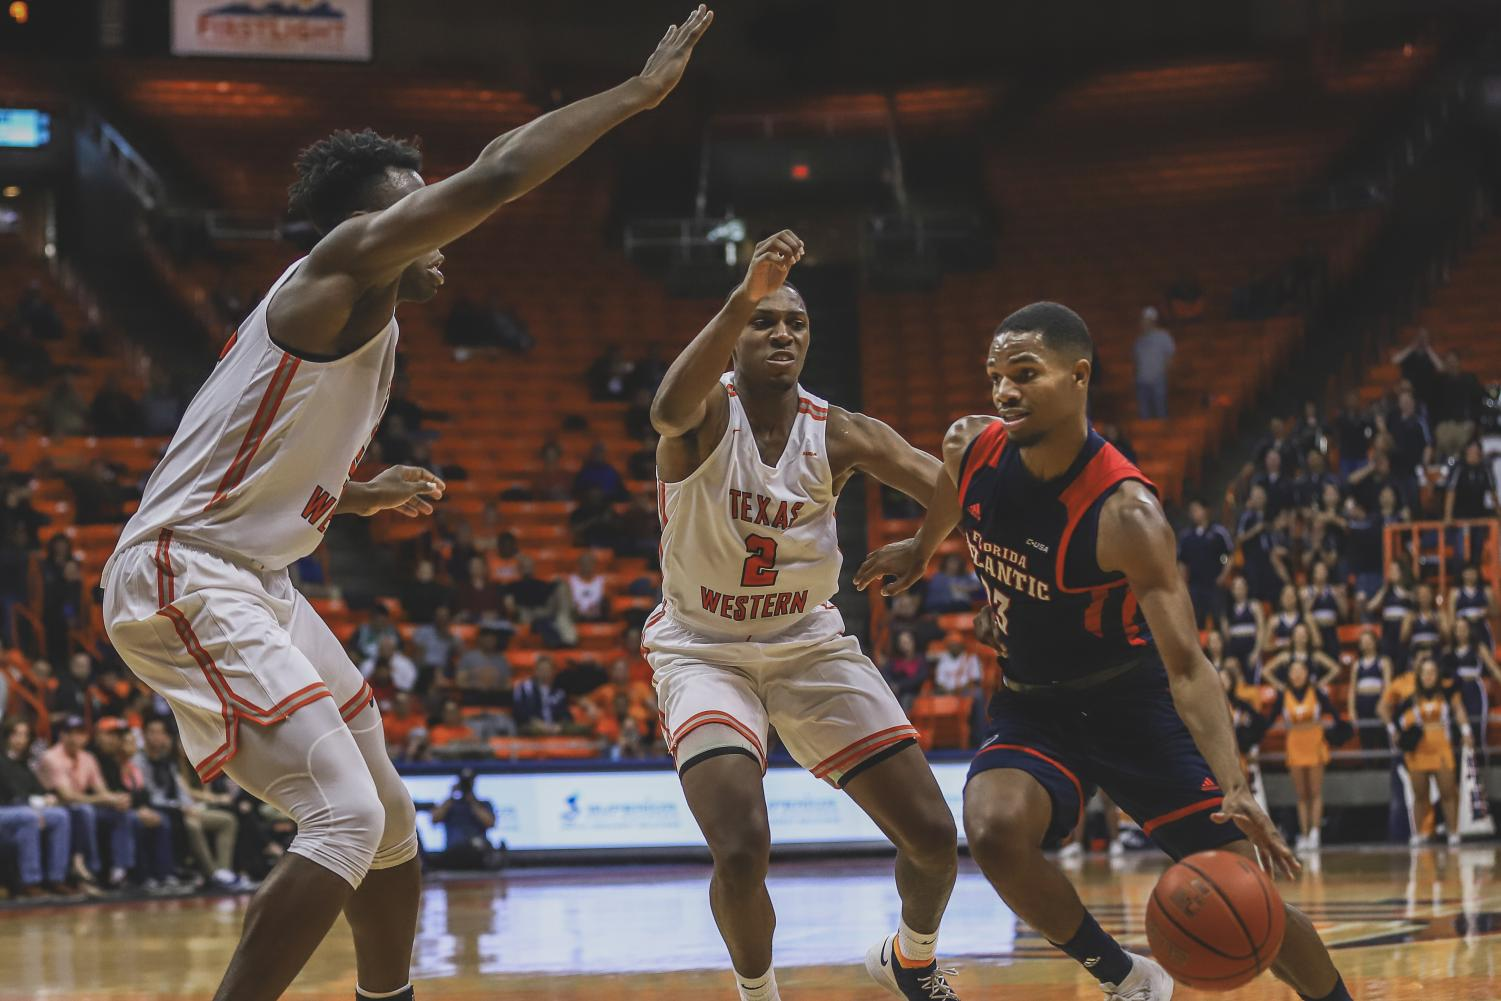 The Miners fall to FAU on Thursday, Feb. 7 at the Don Haskins Center.